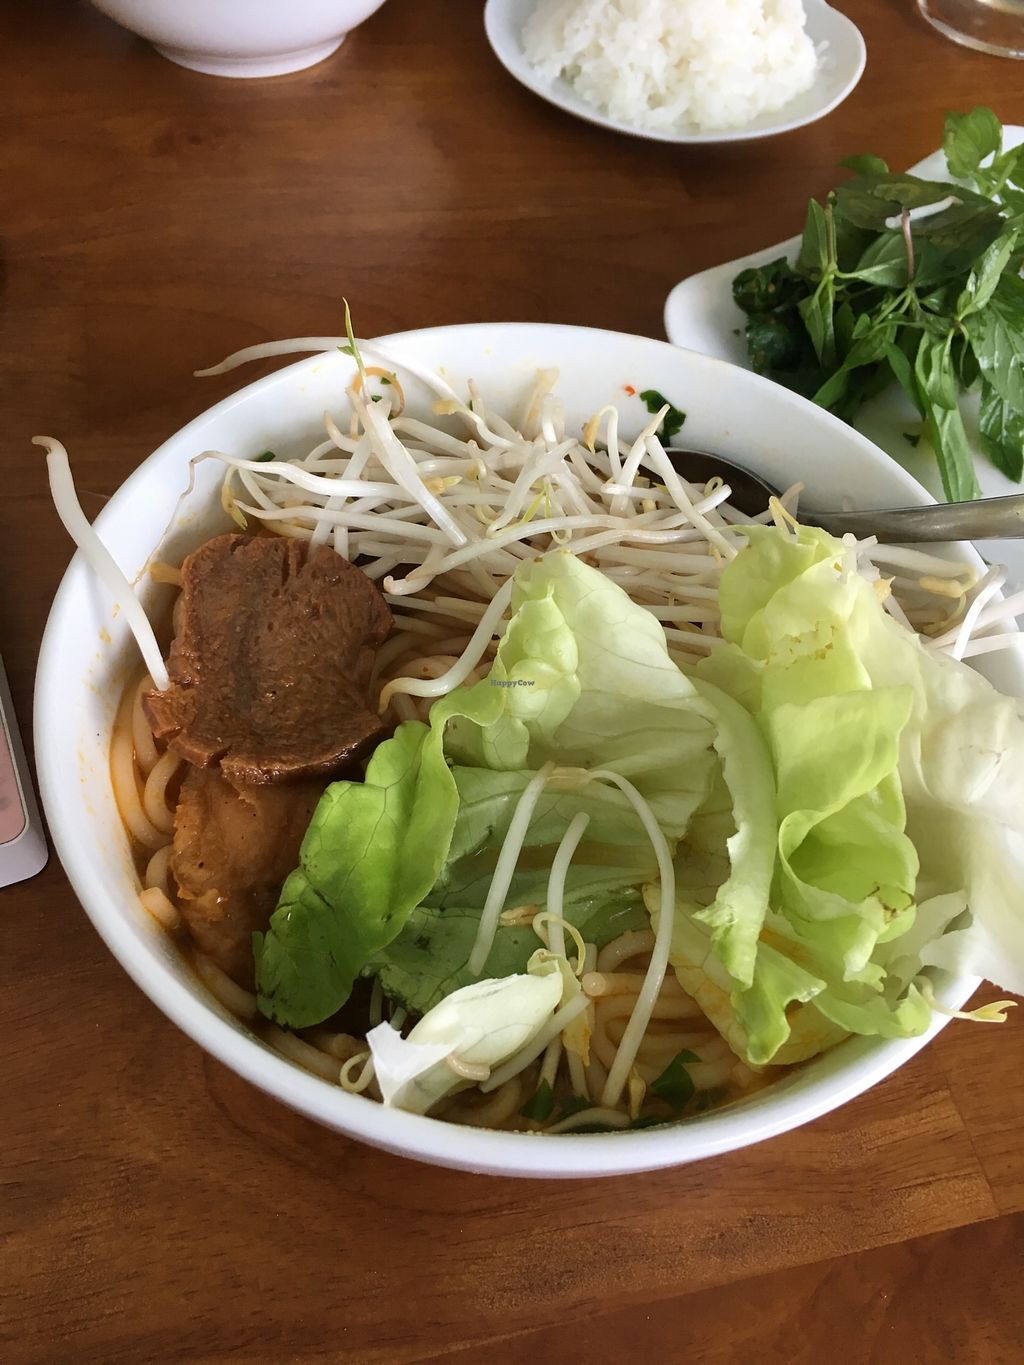 """Photo of Phap Duyen Mon An Chay  by <a href=""""/members/profile/MollyKennedy"""">MollyKennedy</a> <br/>Bún Bò Huế Chay (Hue Beef Noodle Vegetarian) <br/> January 24, 2018  - <a href='/contact/abuse/image/108756/350405'>Report</a>"""